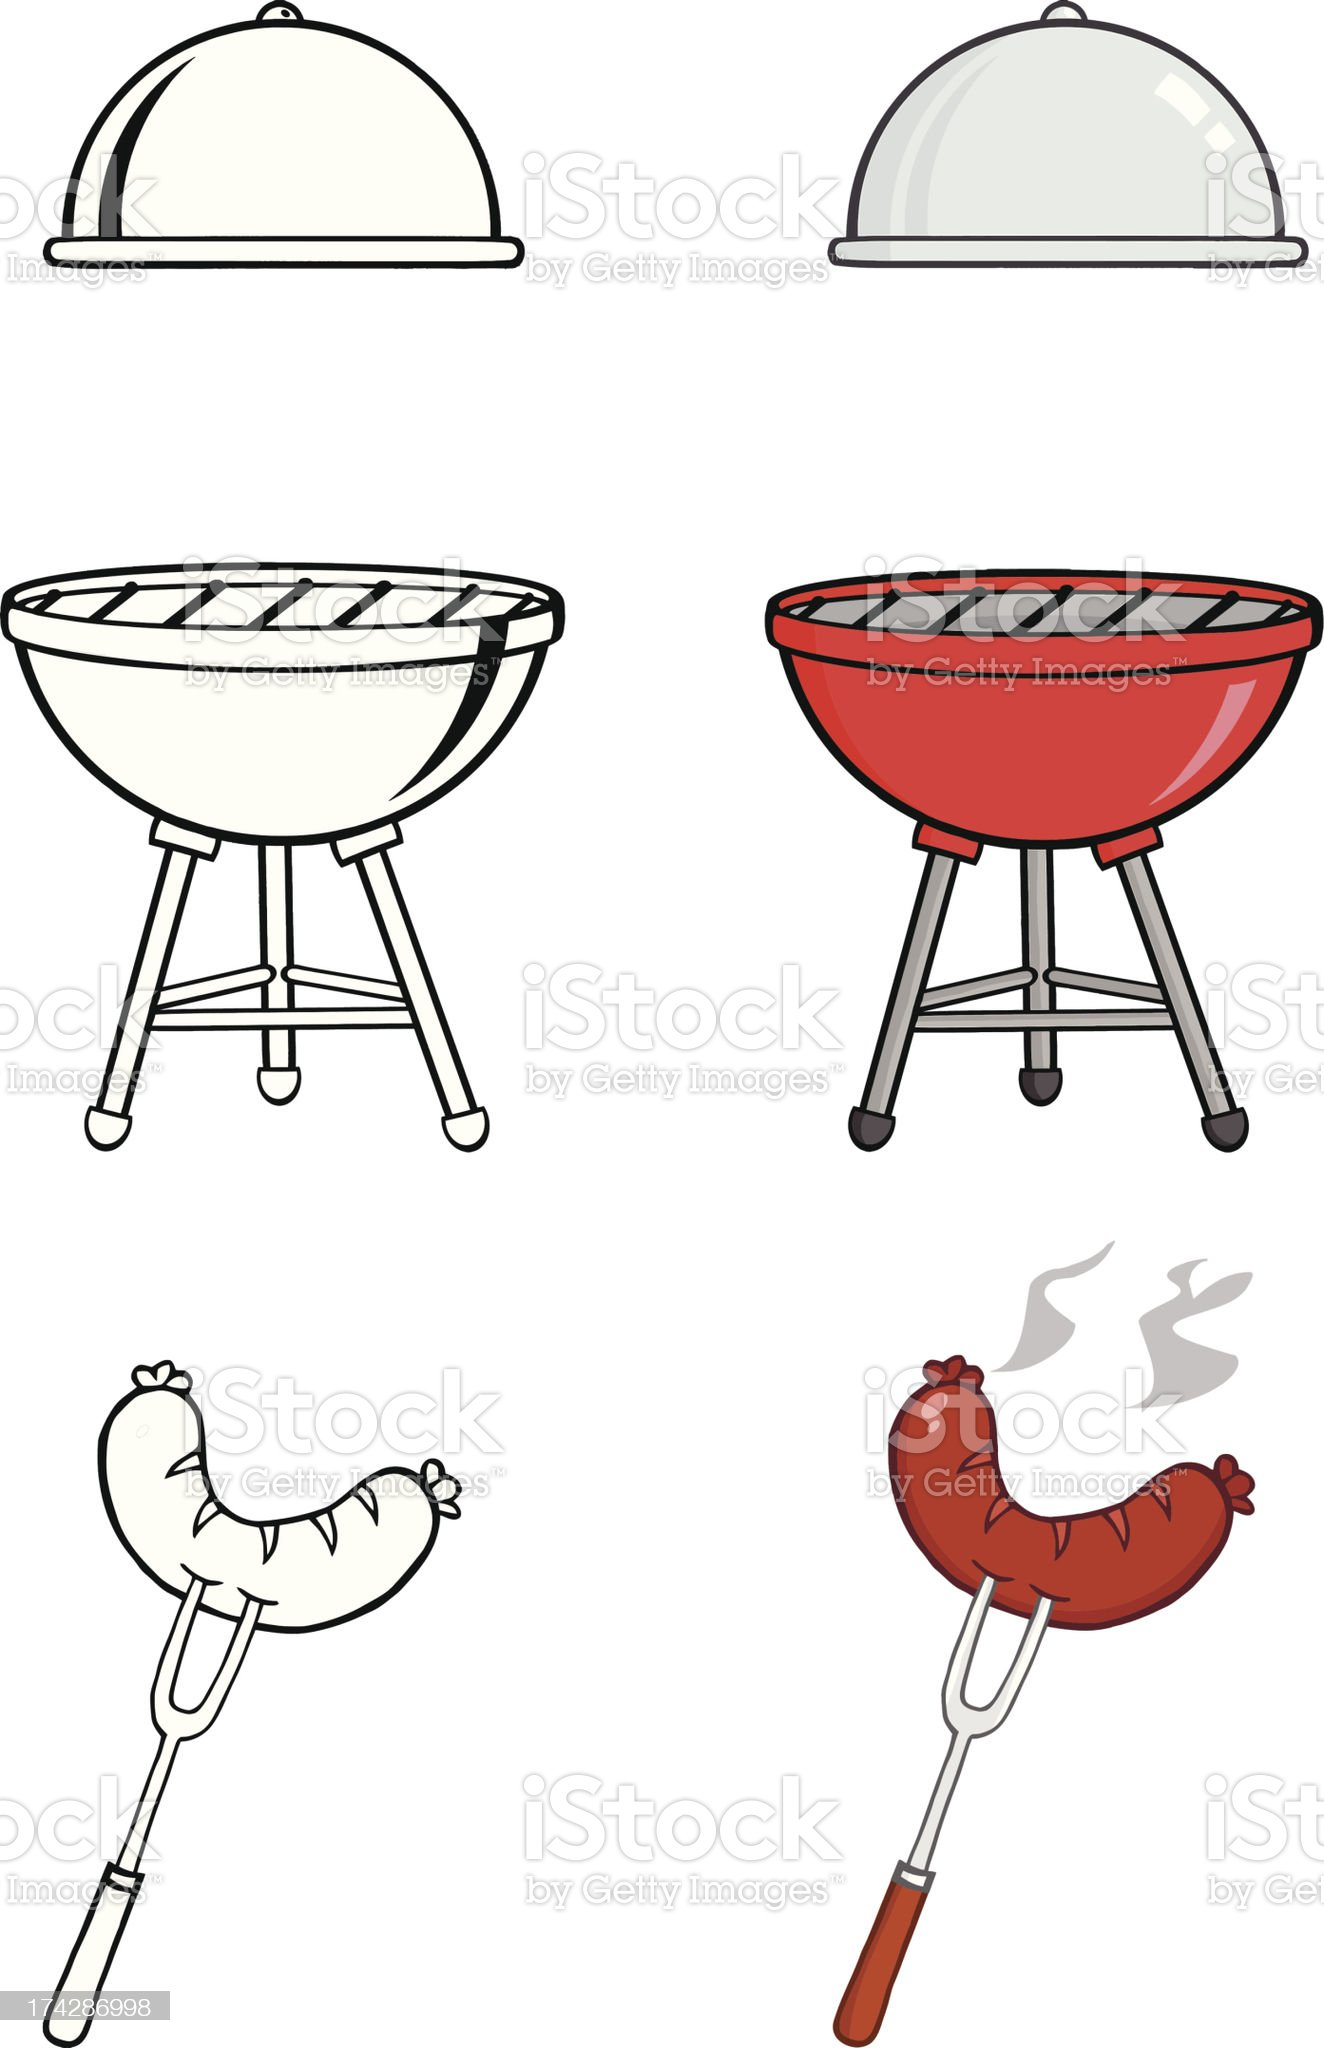 Barbecue Tools Collection royalty-free stock vector art